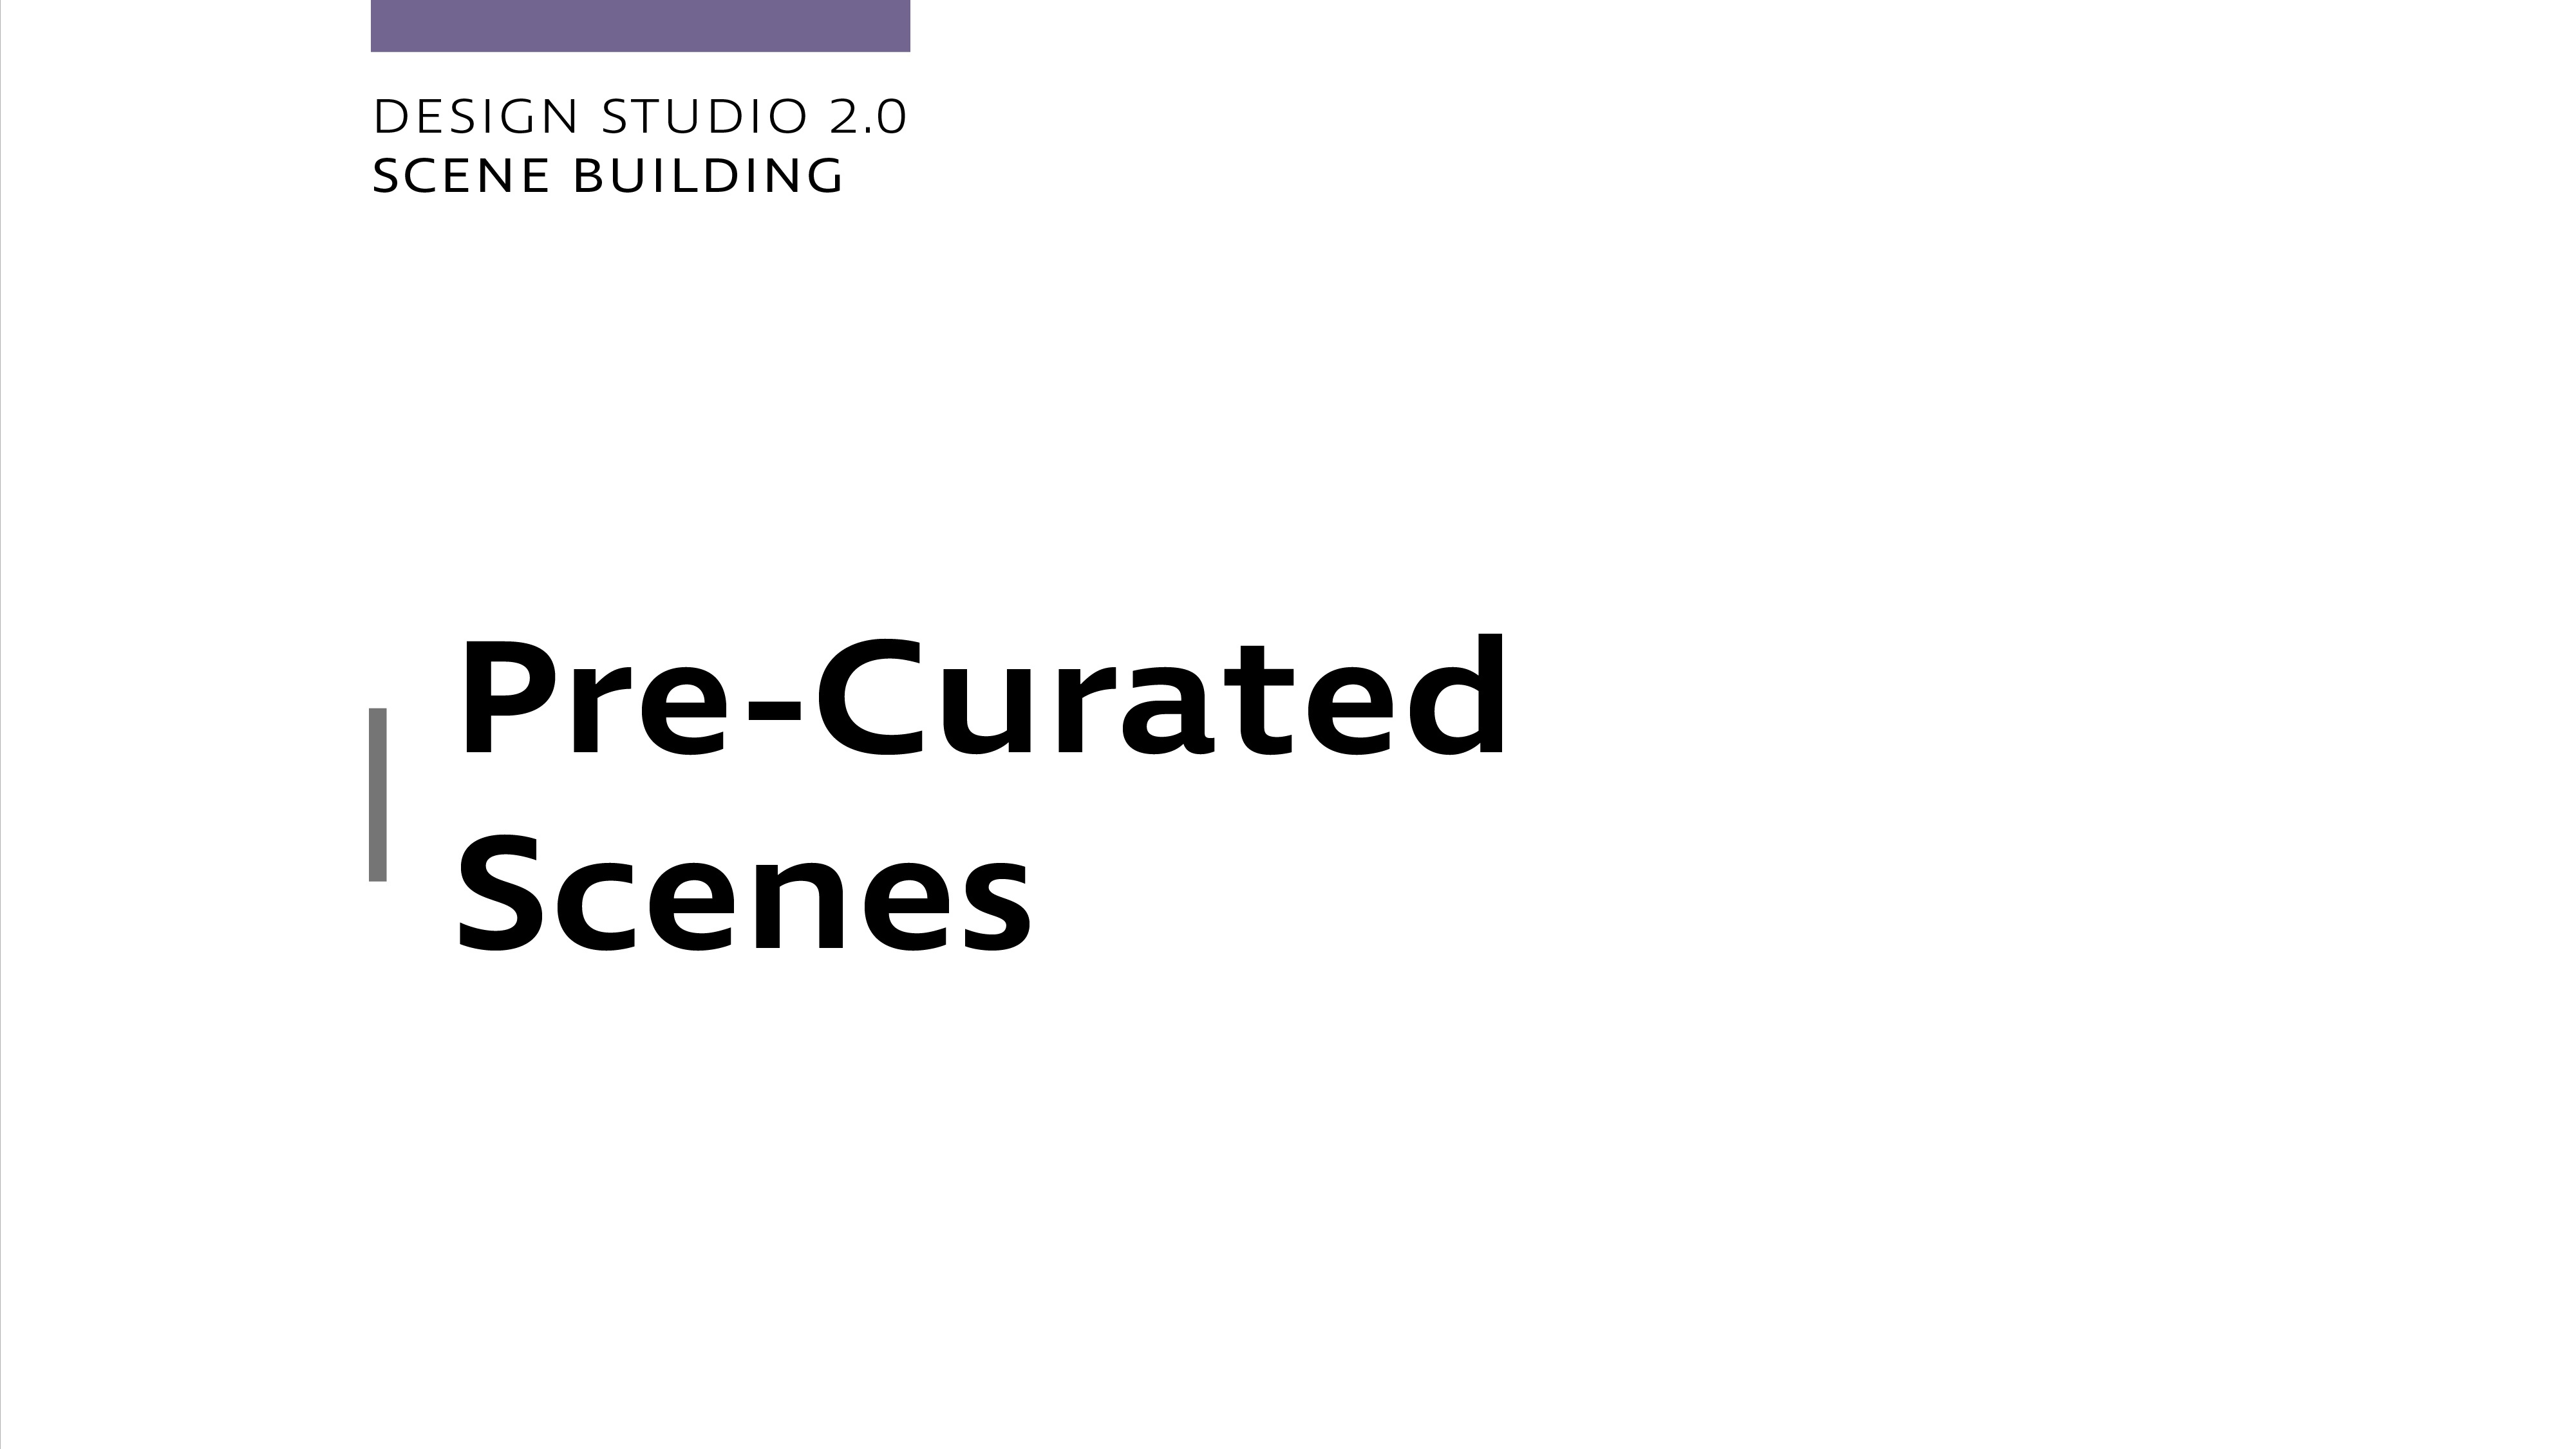 Design Studio 2.0 - Precurated Scenes